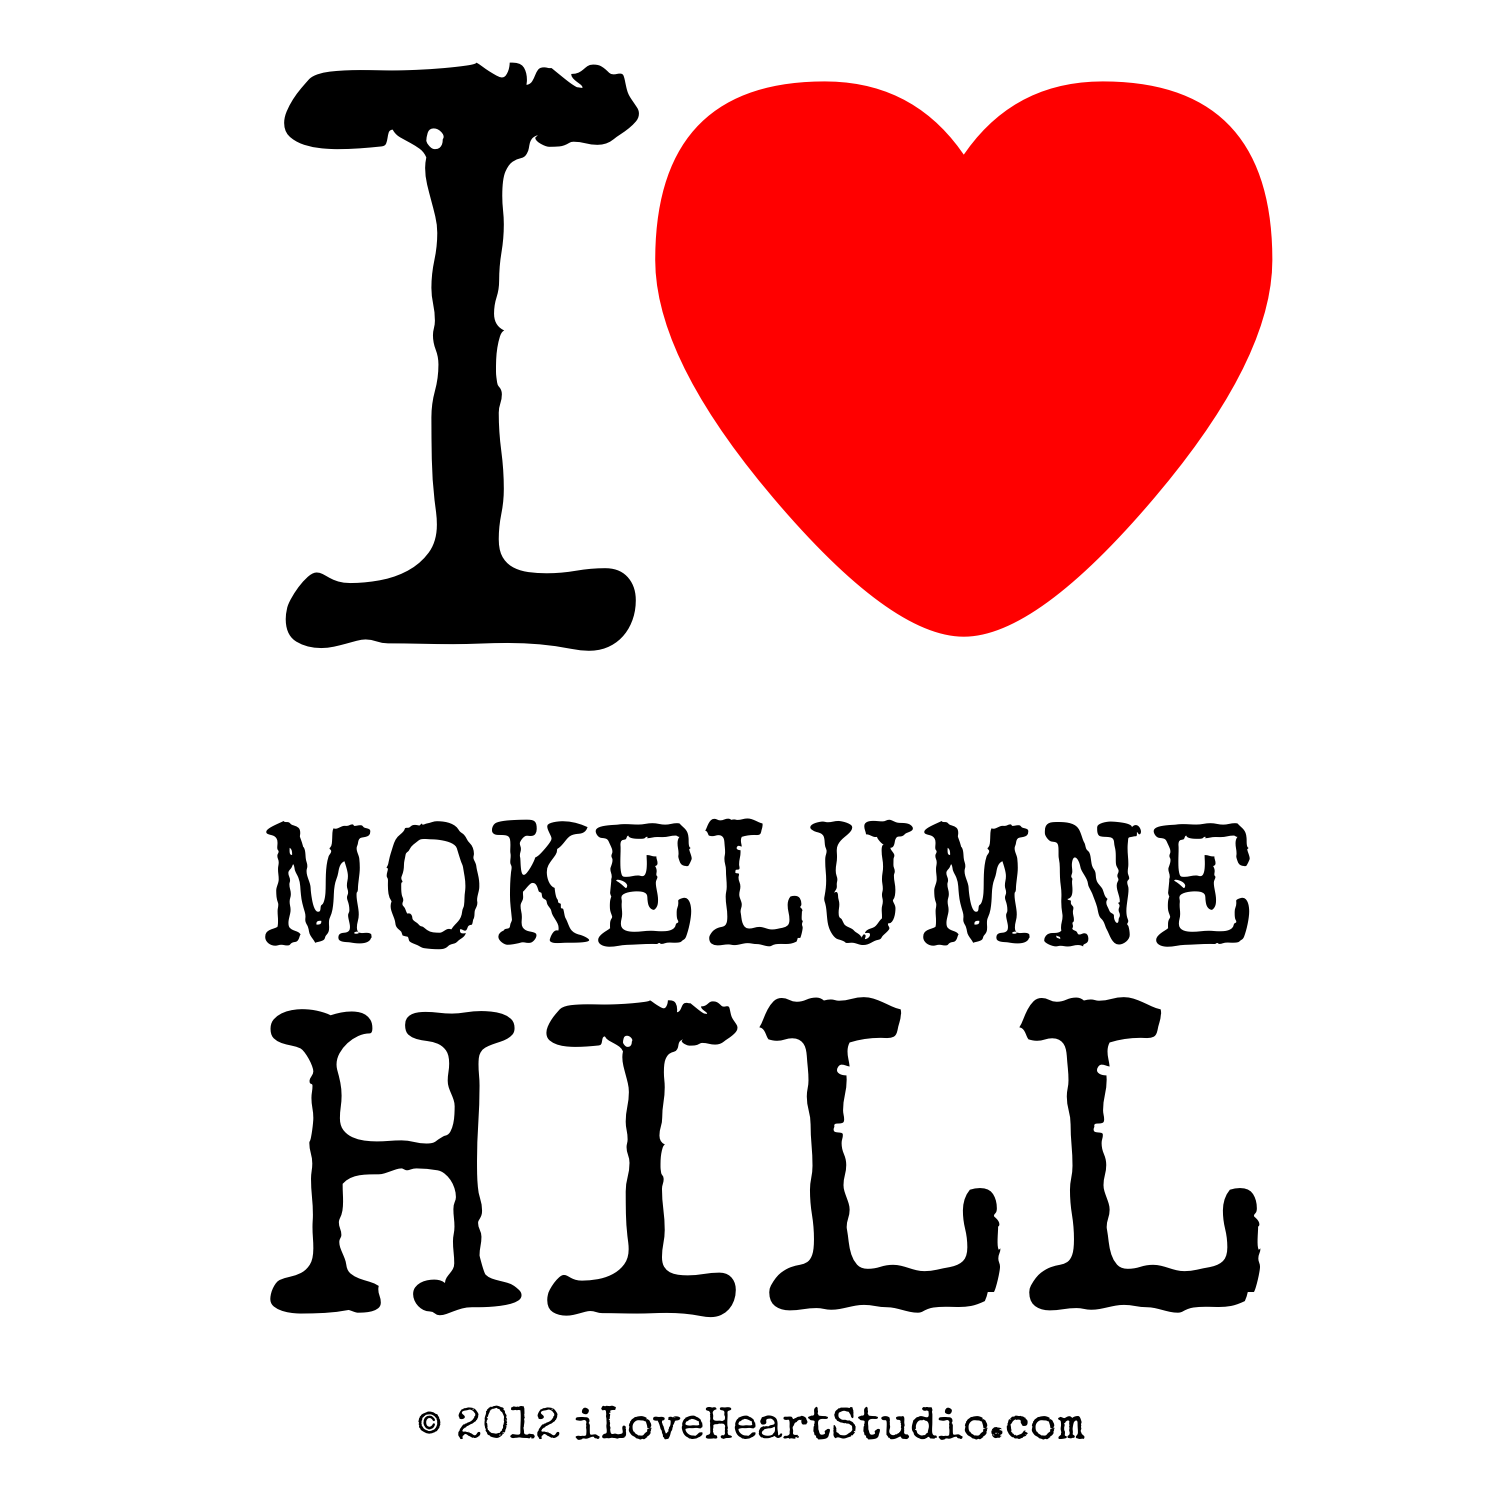 mokelumne hill men Buy men's mokelumne hill fire protection district fire department zoom hoodie sweatshirt and other active hoodies at amazoncom our wide selection is elegible for free shipping and free returns.